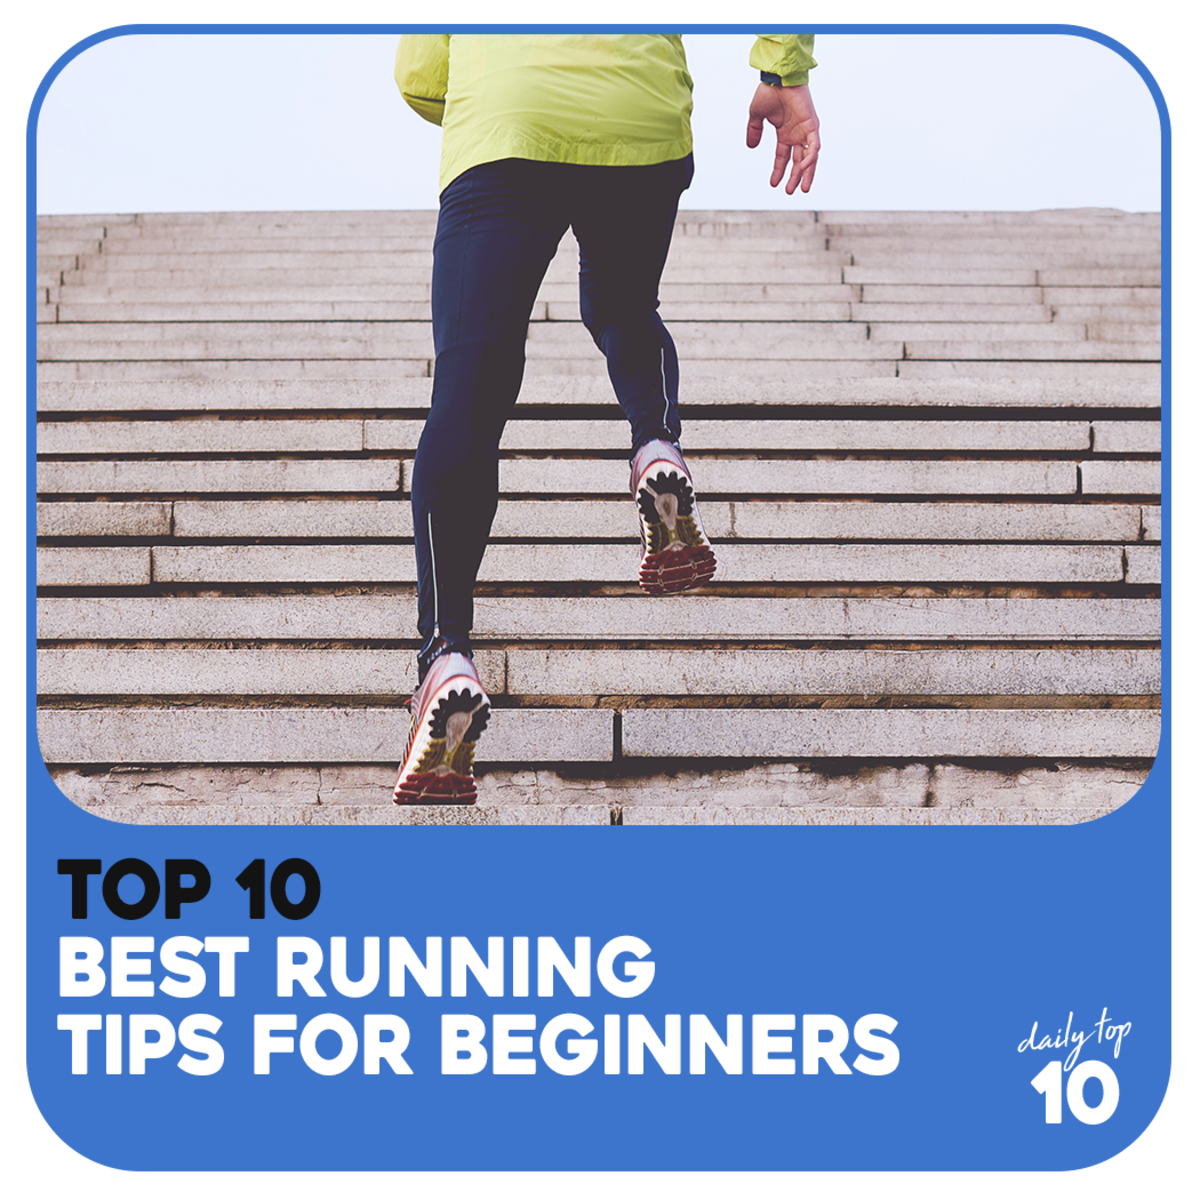 Top 10 Best Running Tips for Beginners